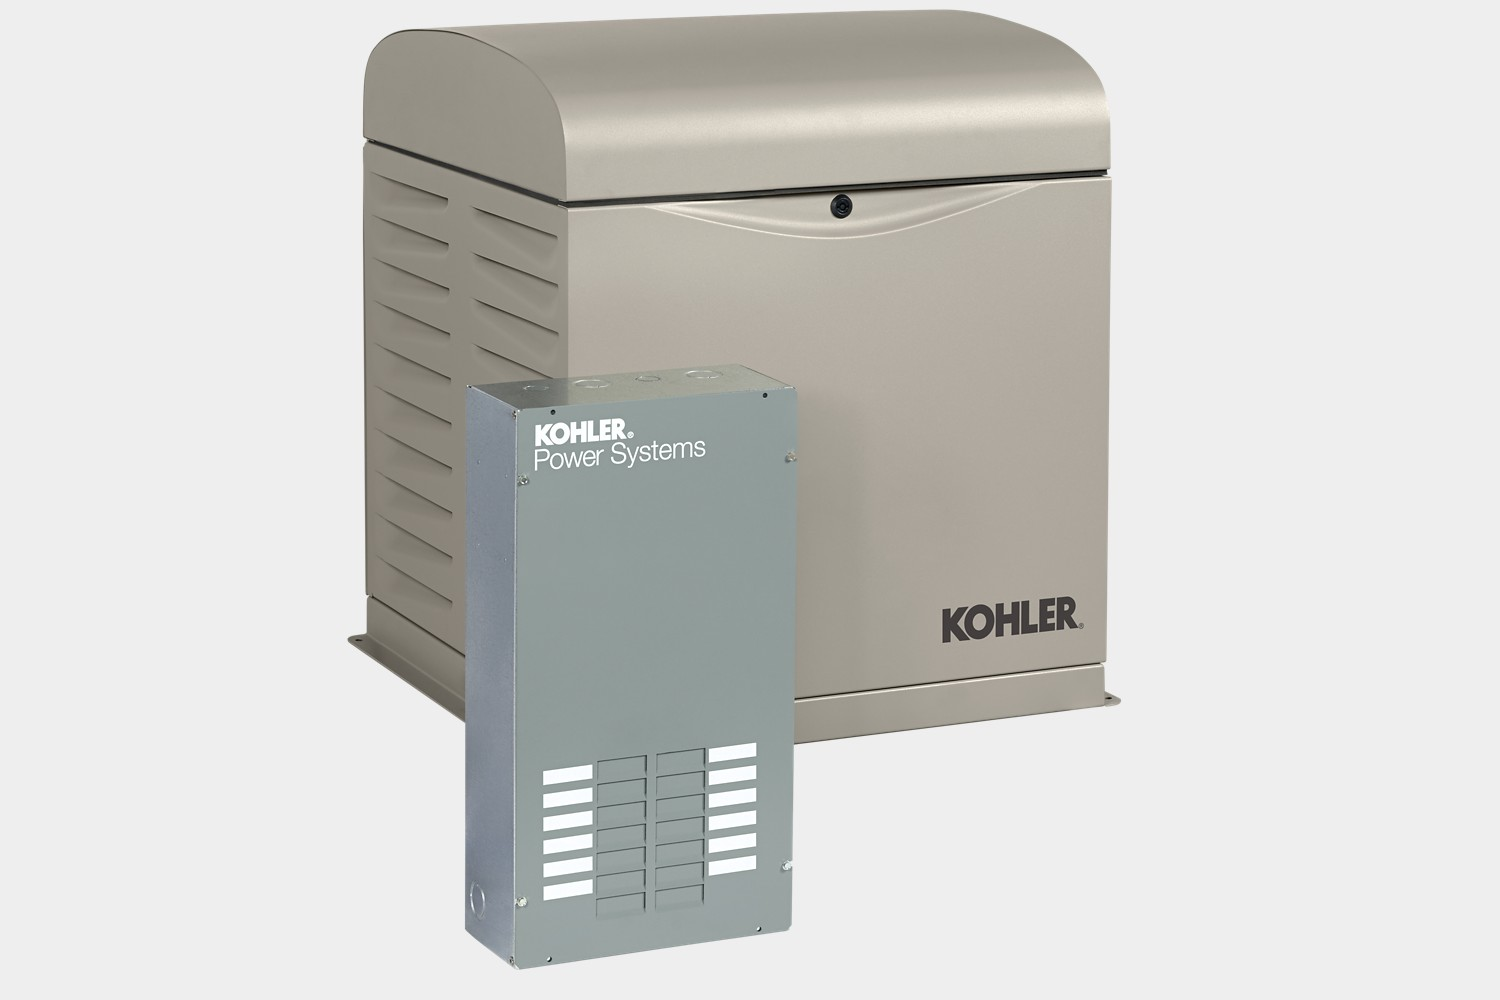 kohler 20kw generator wiring diagram animal cell with chromosomes generac power systems guardian home generators